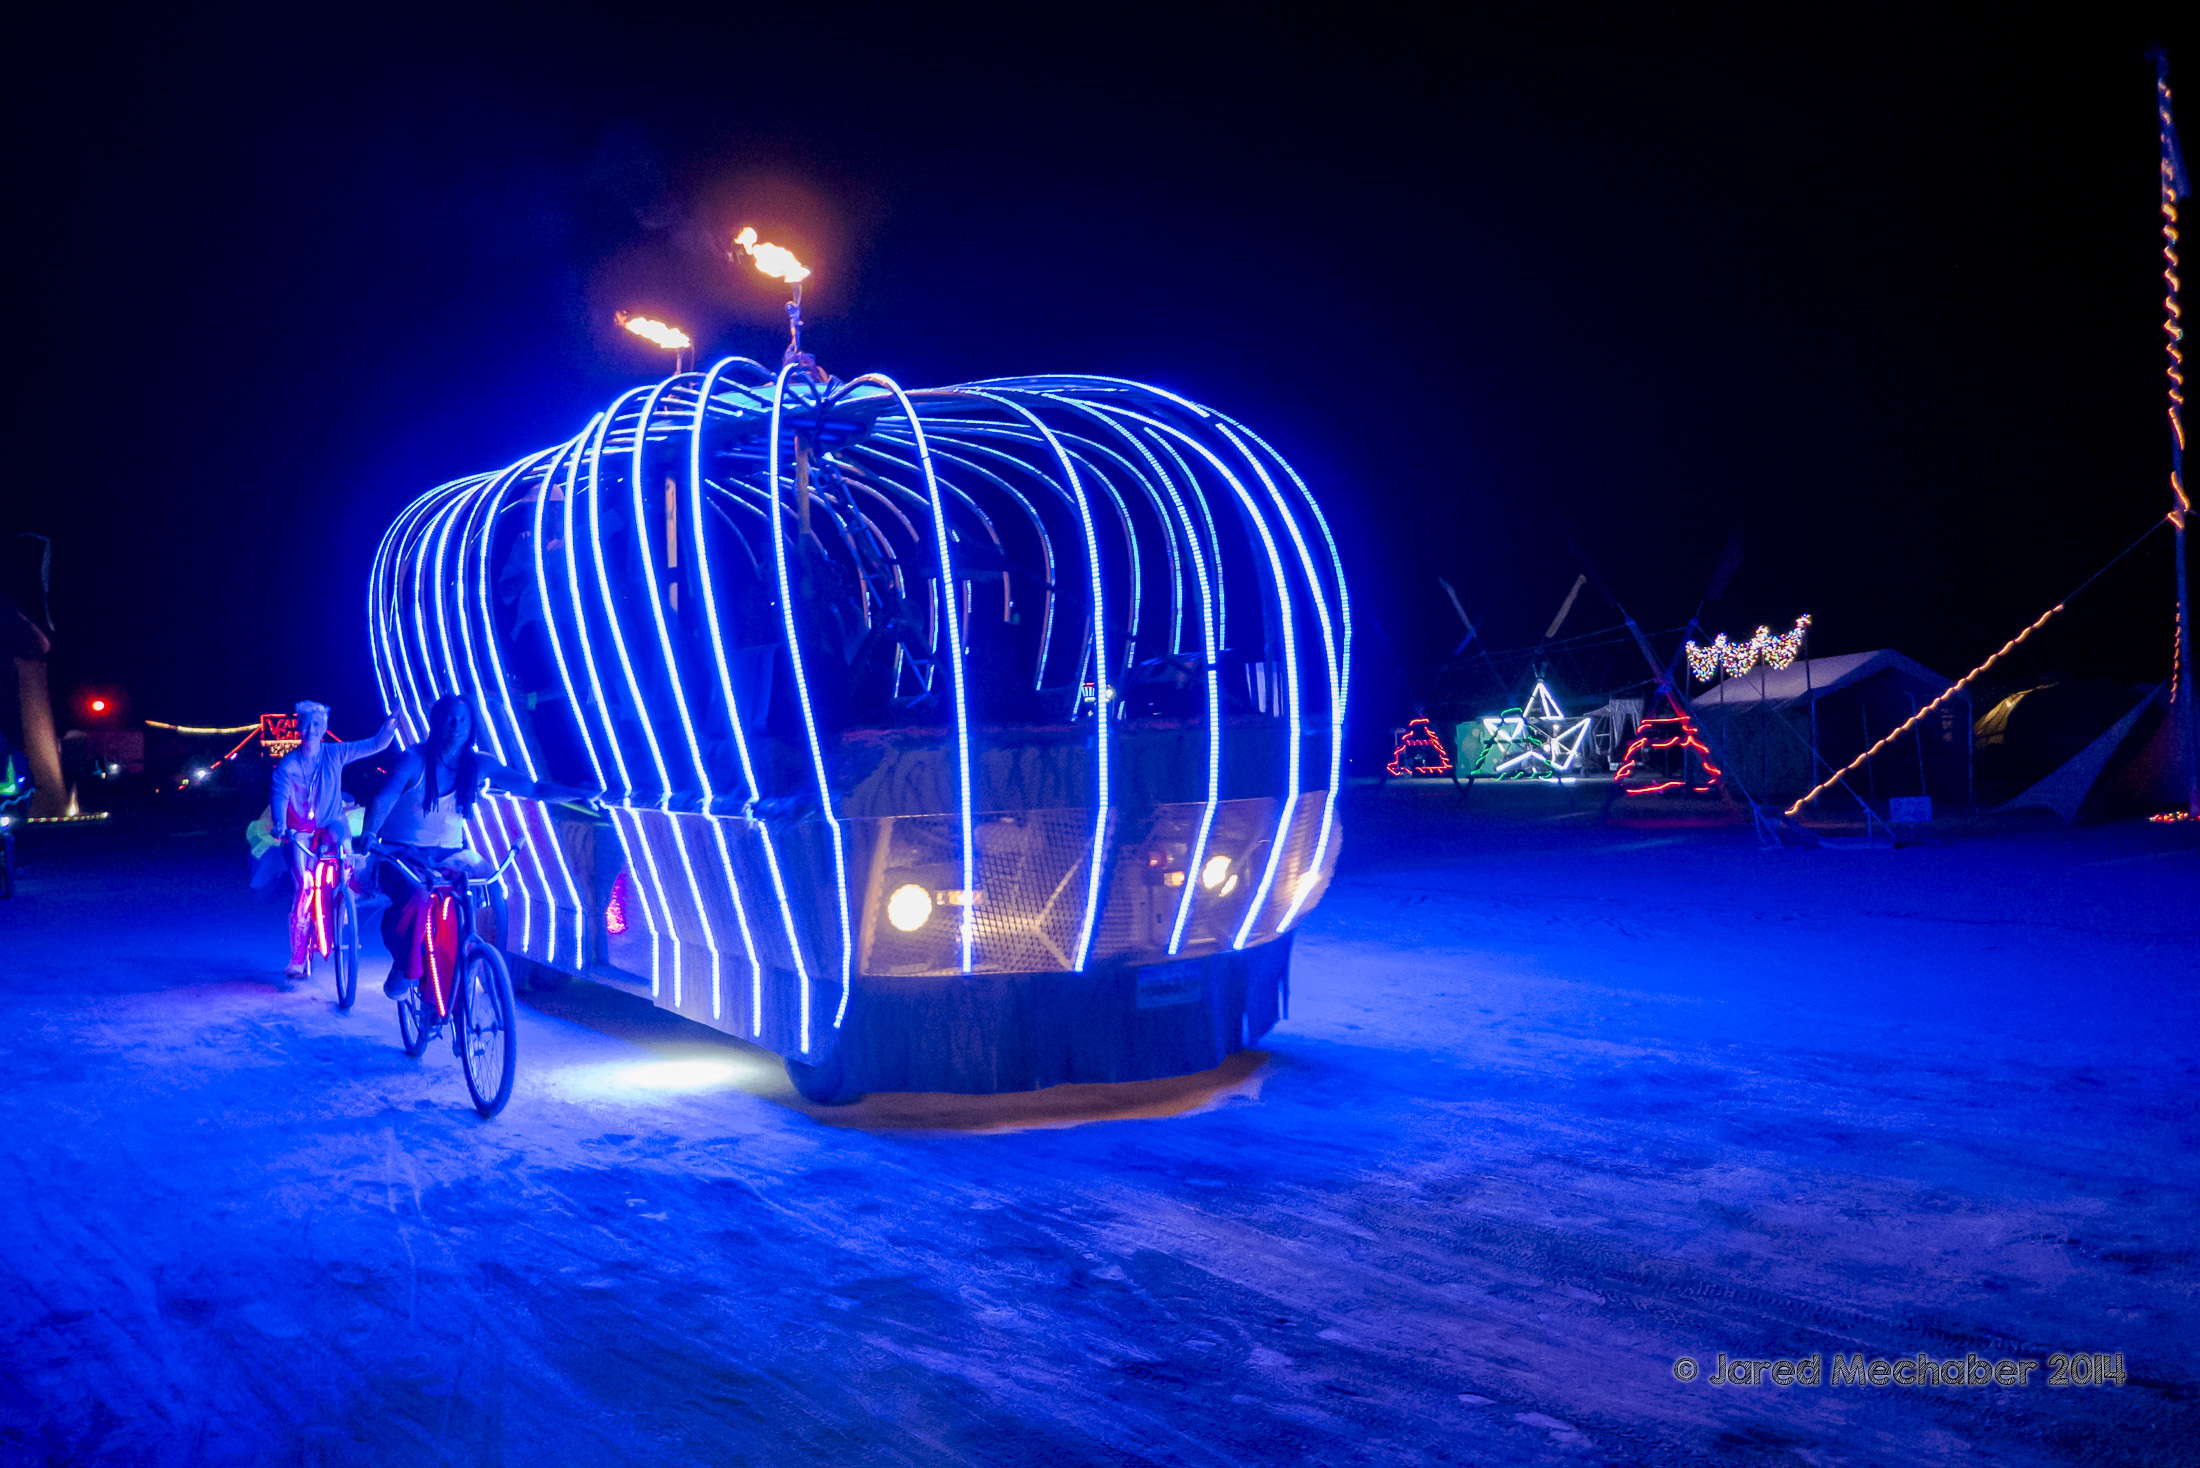 15-140826_Burningman_1788.JPG